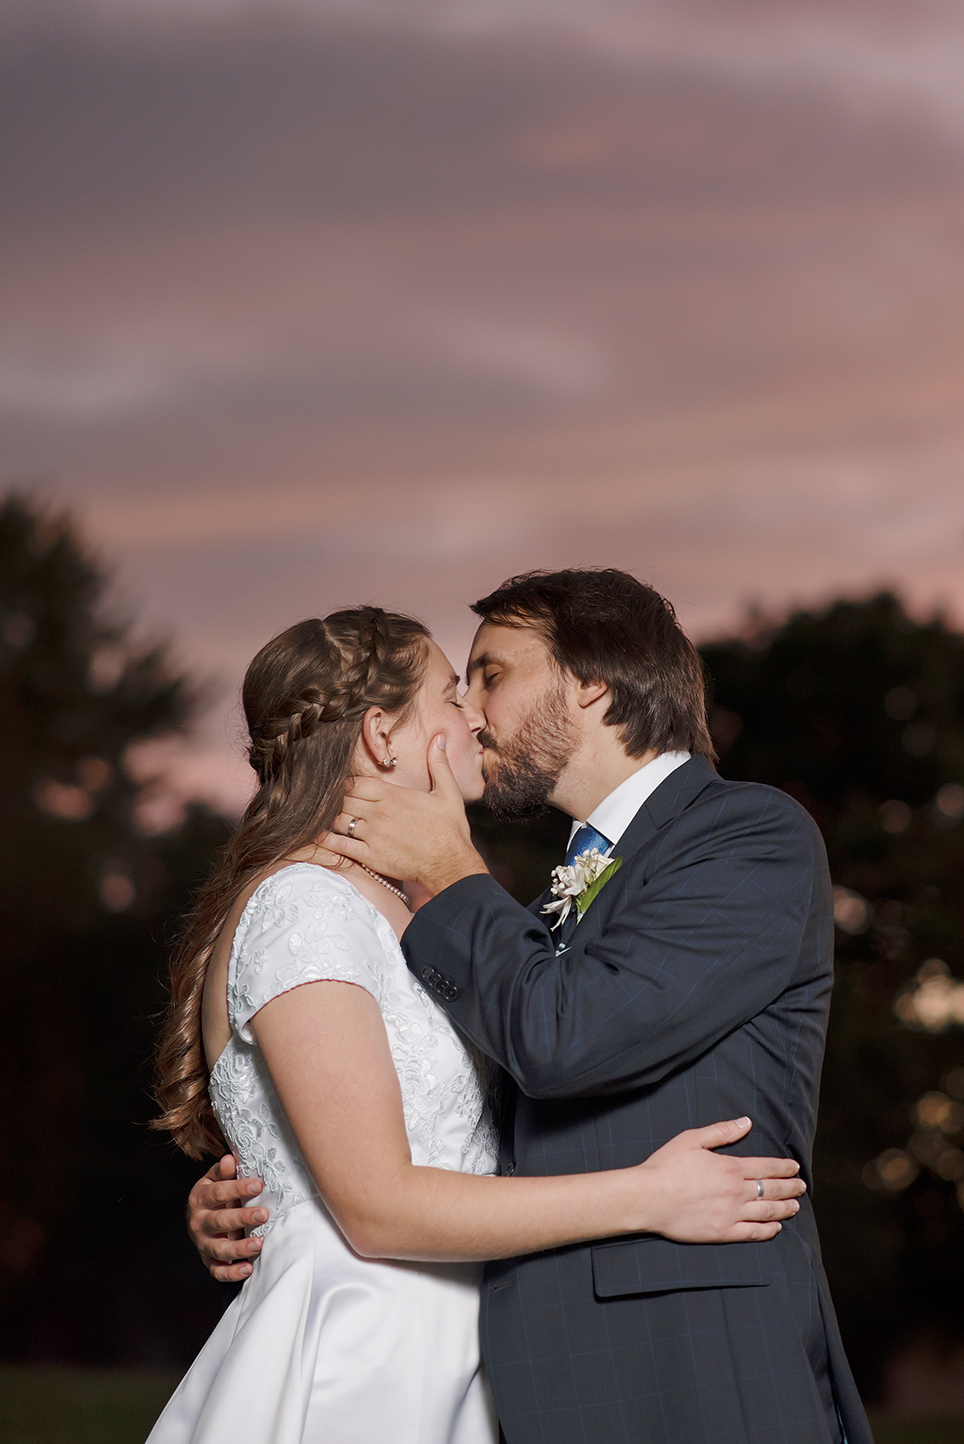 LINDSAY-ADKINS-PHOTOGRAPHY-MICHIGAN-WEDDING-PHOTOGRAPHER-ADRIAN-COLLEGE-WEDDING